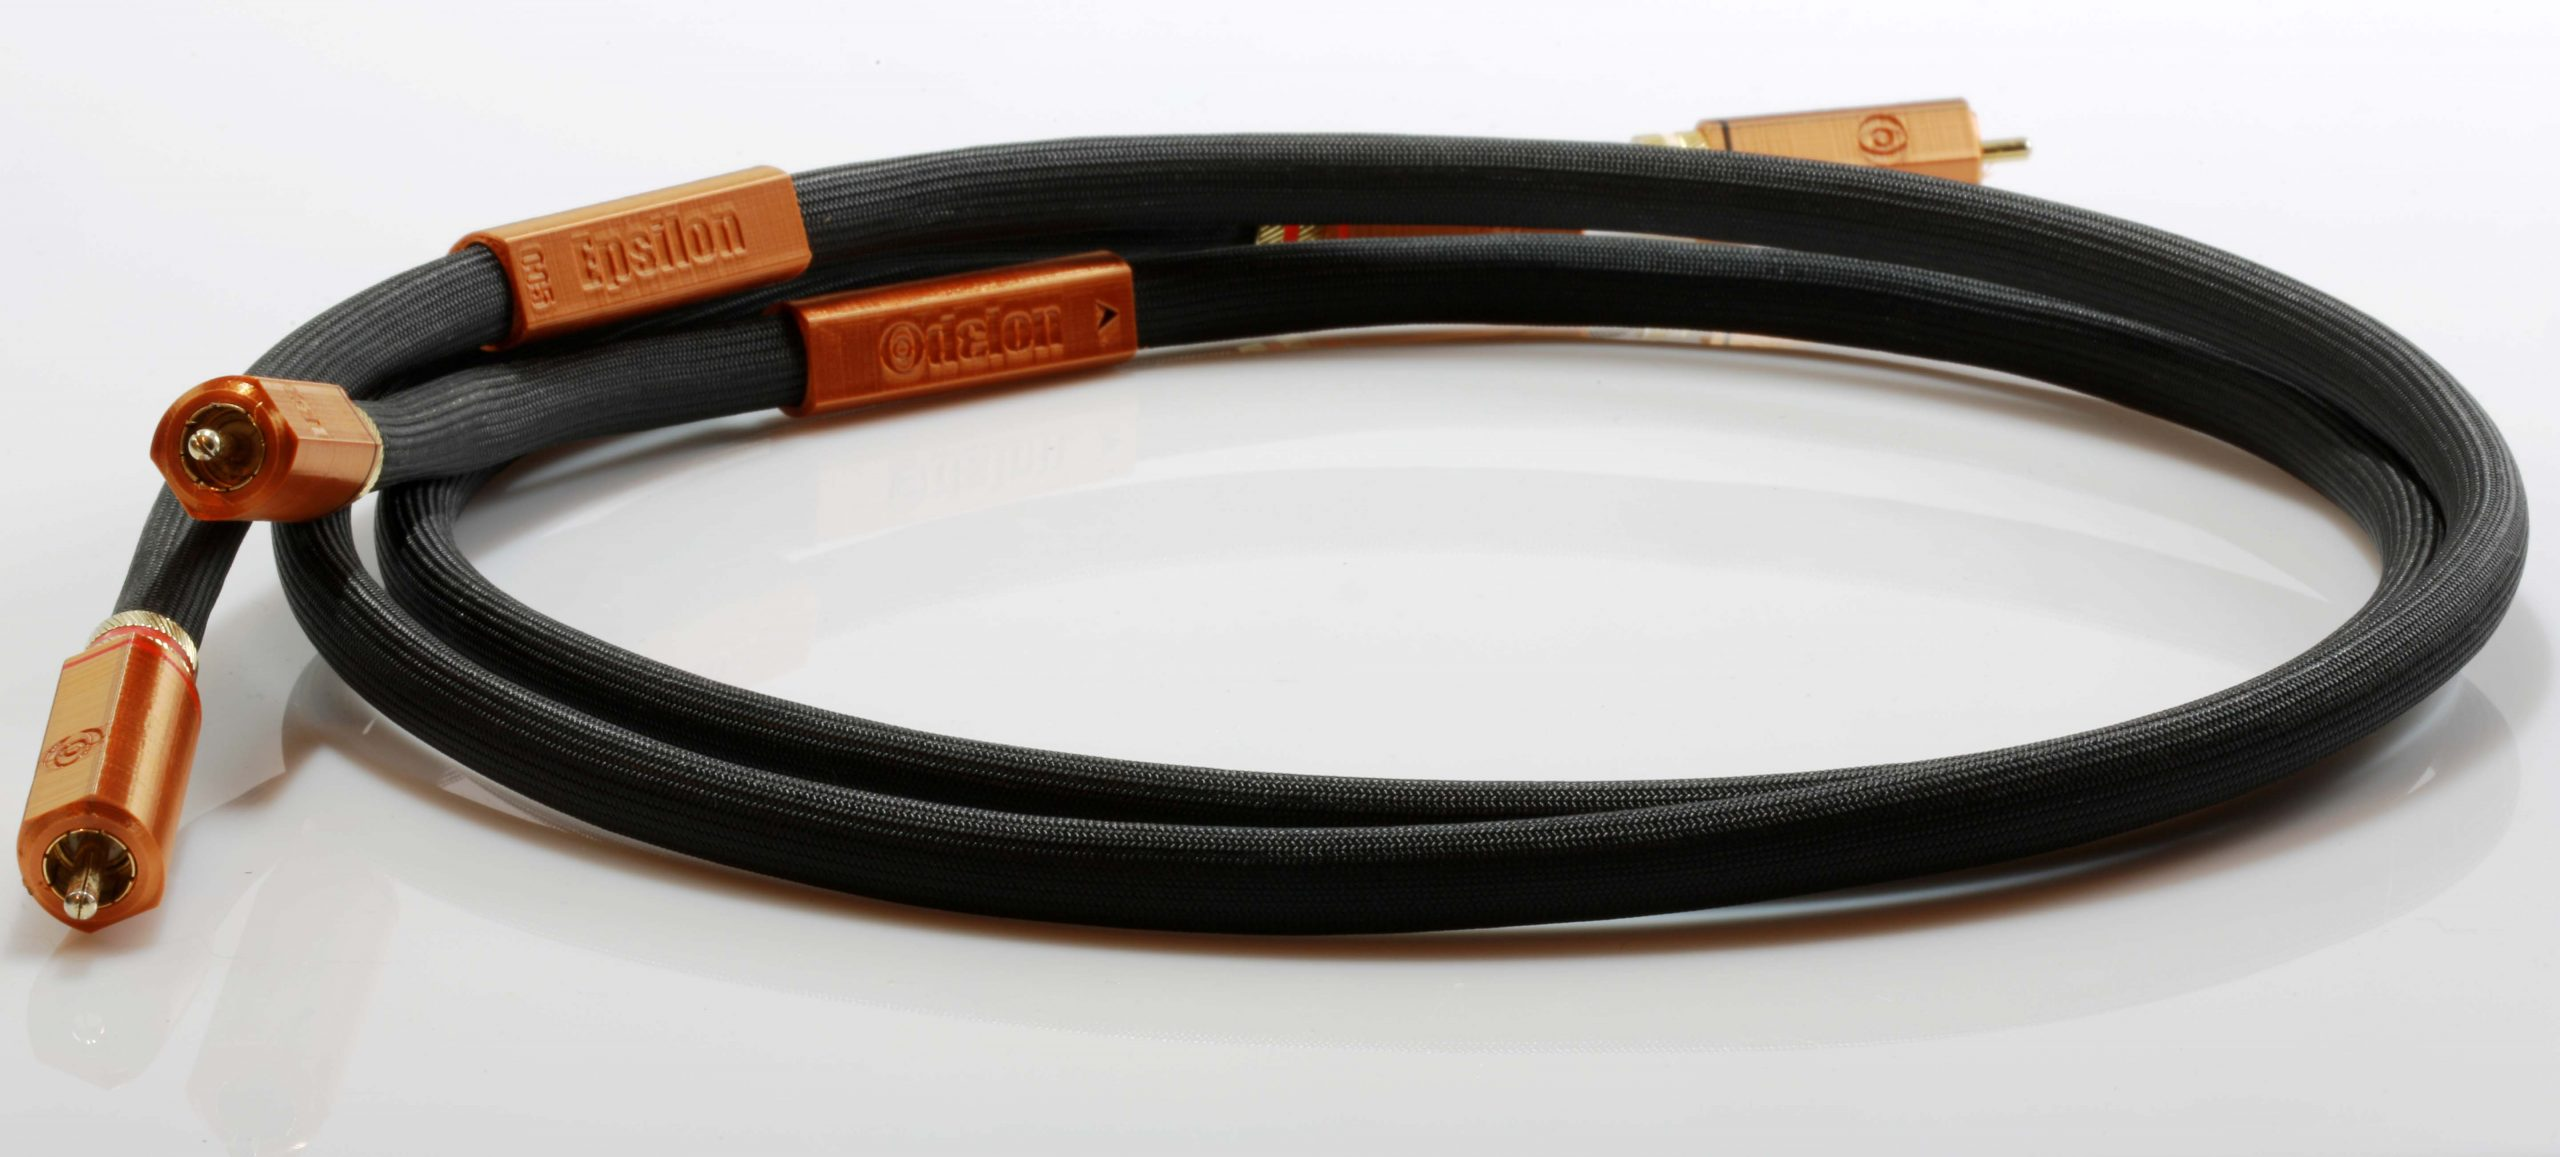 Epsilon Modulation RCA Odeion Cable